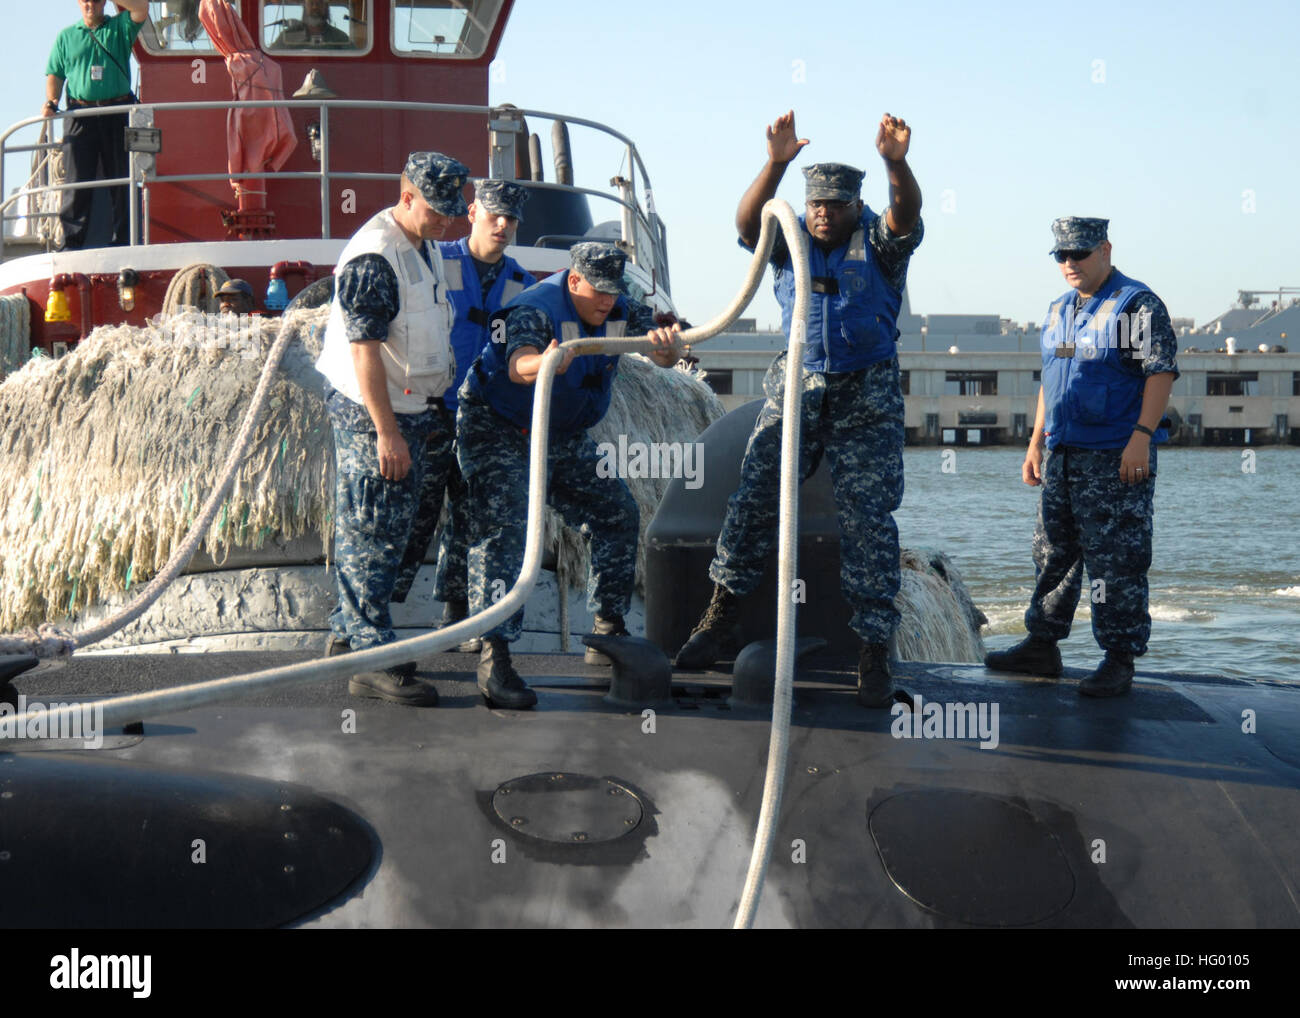 110825-N-NK458-008 NORFOLK (Aug. 25, 2011) Sailors aboard a Los Angeles-class attack submarine casts away mooring - Stock Image